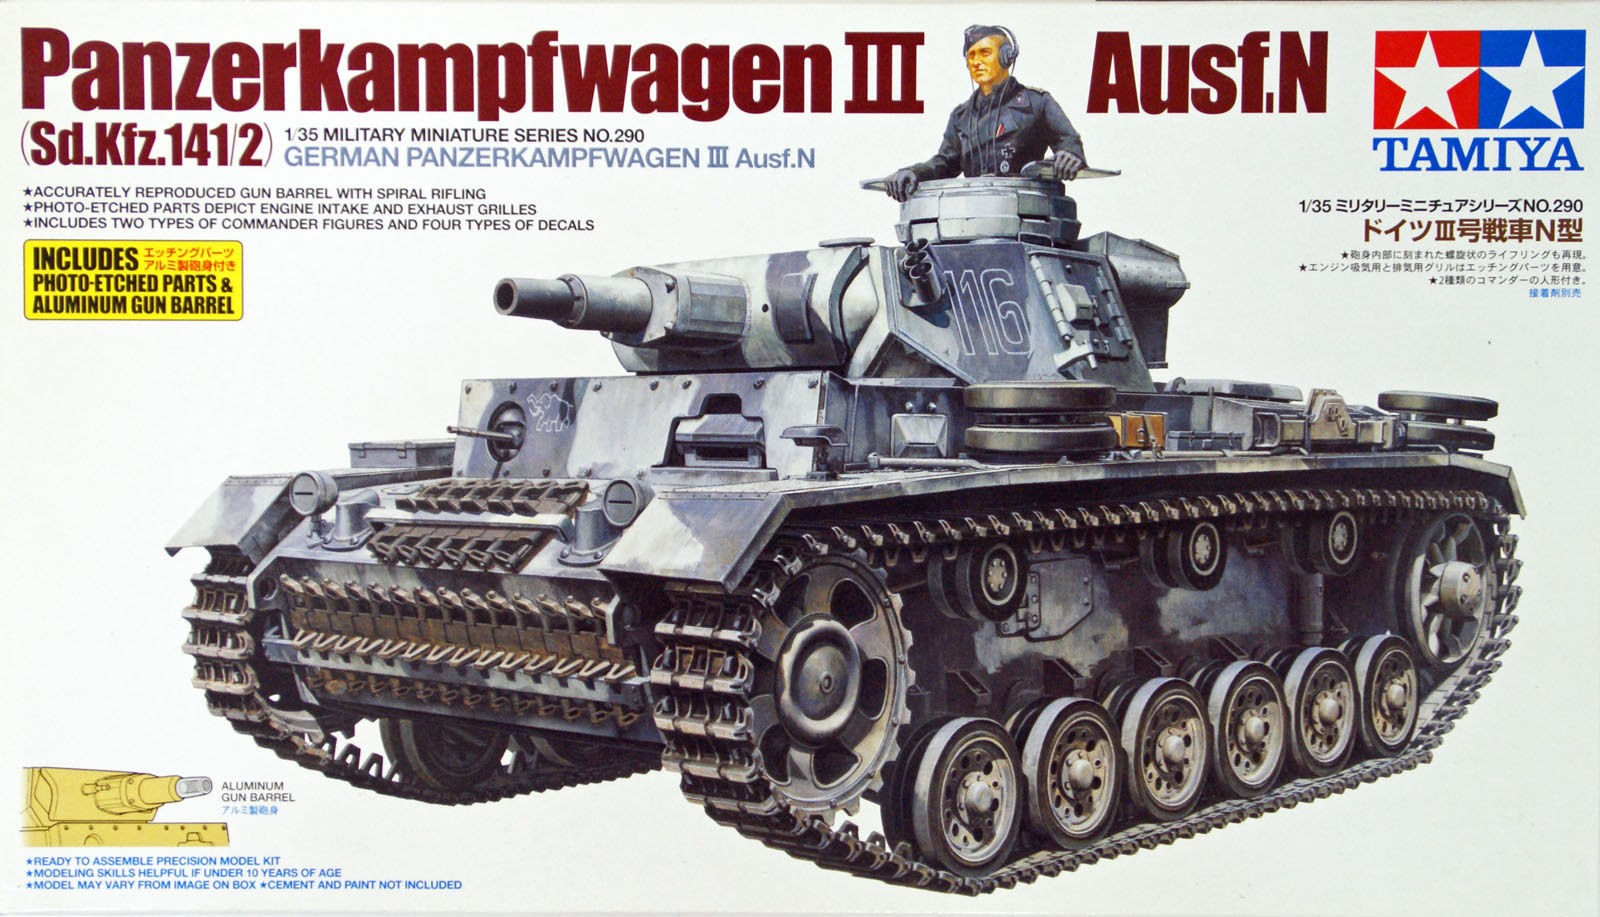 German Panzerkampfwagen III Ausf.N - Tamiya 35290 - plastic model kit - 1/35 scale